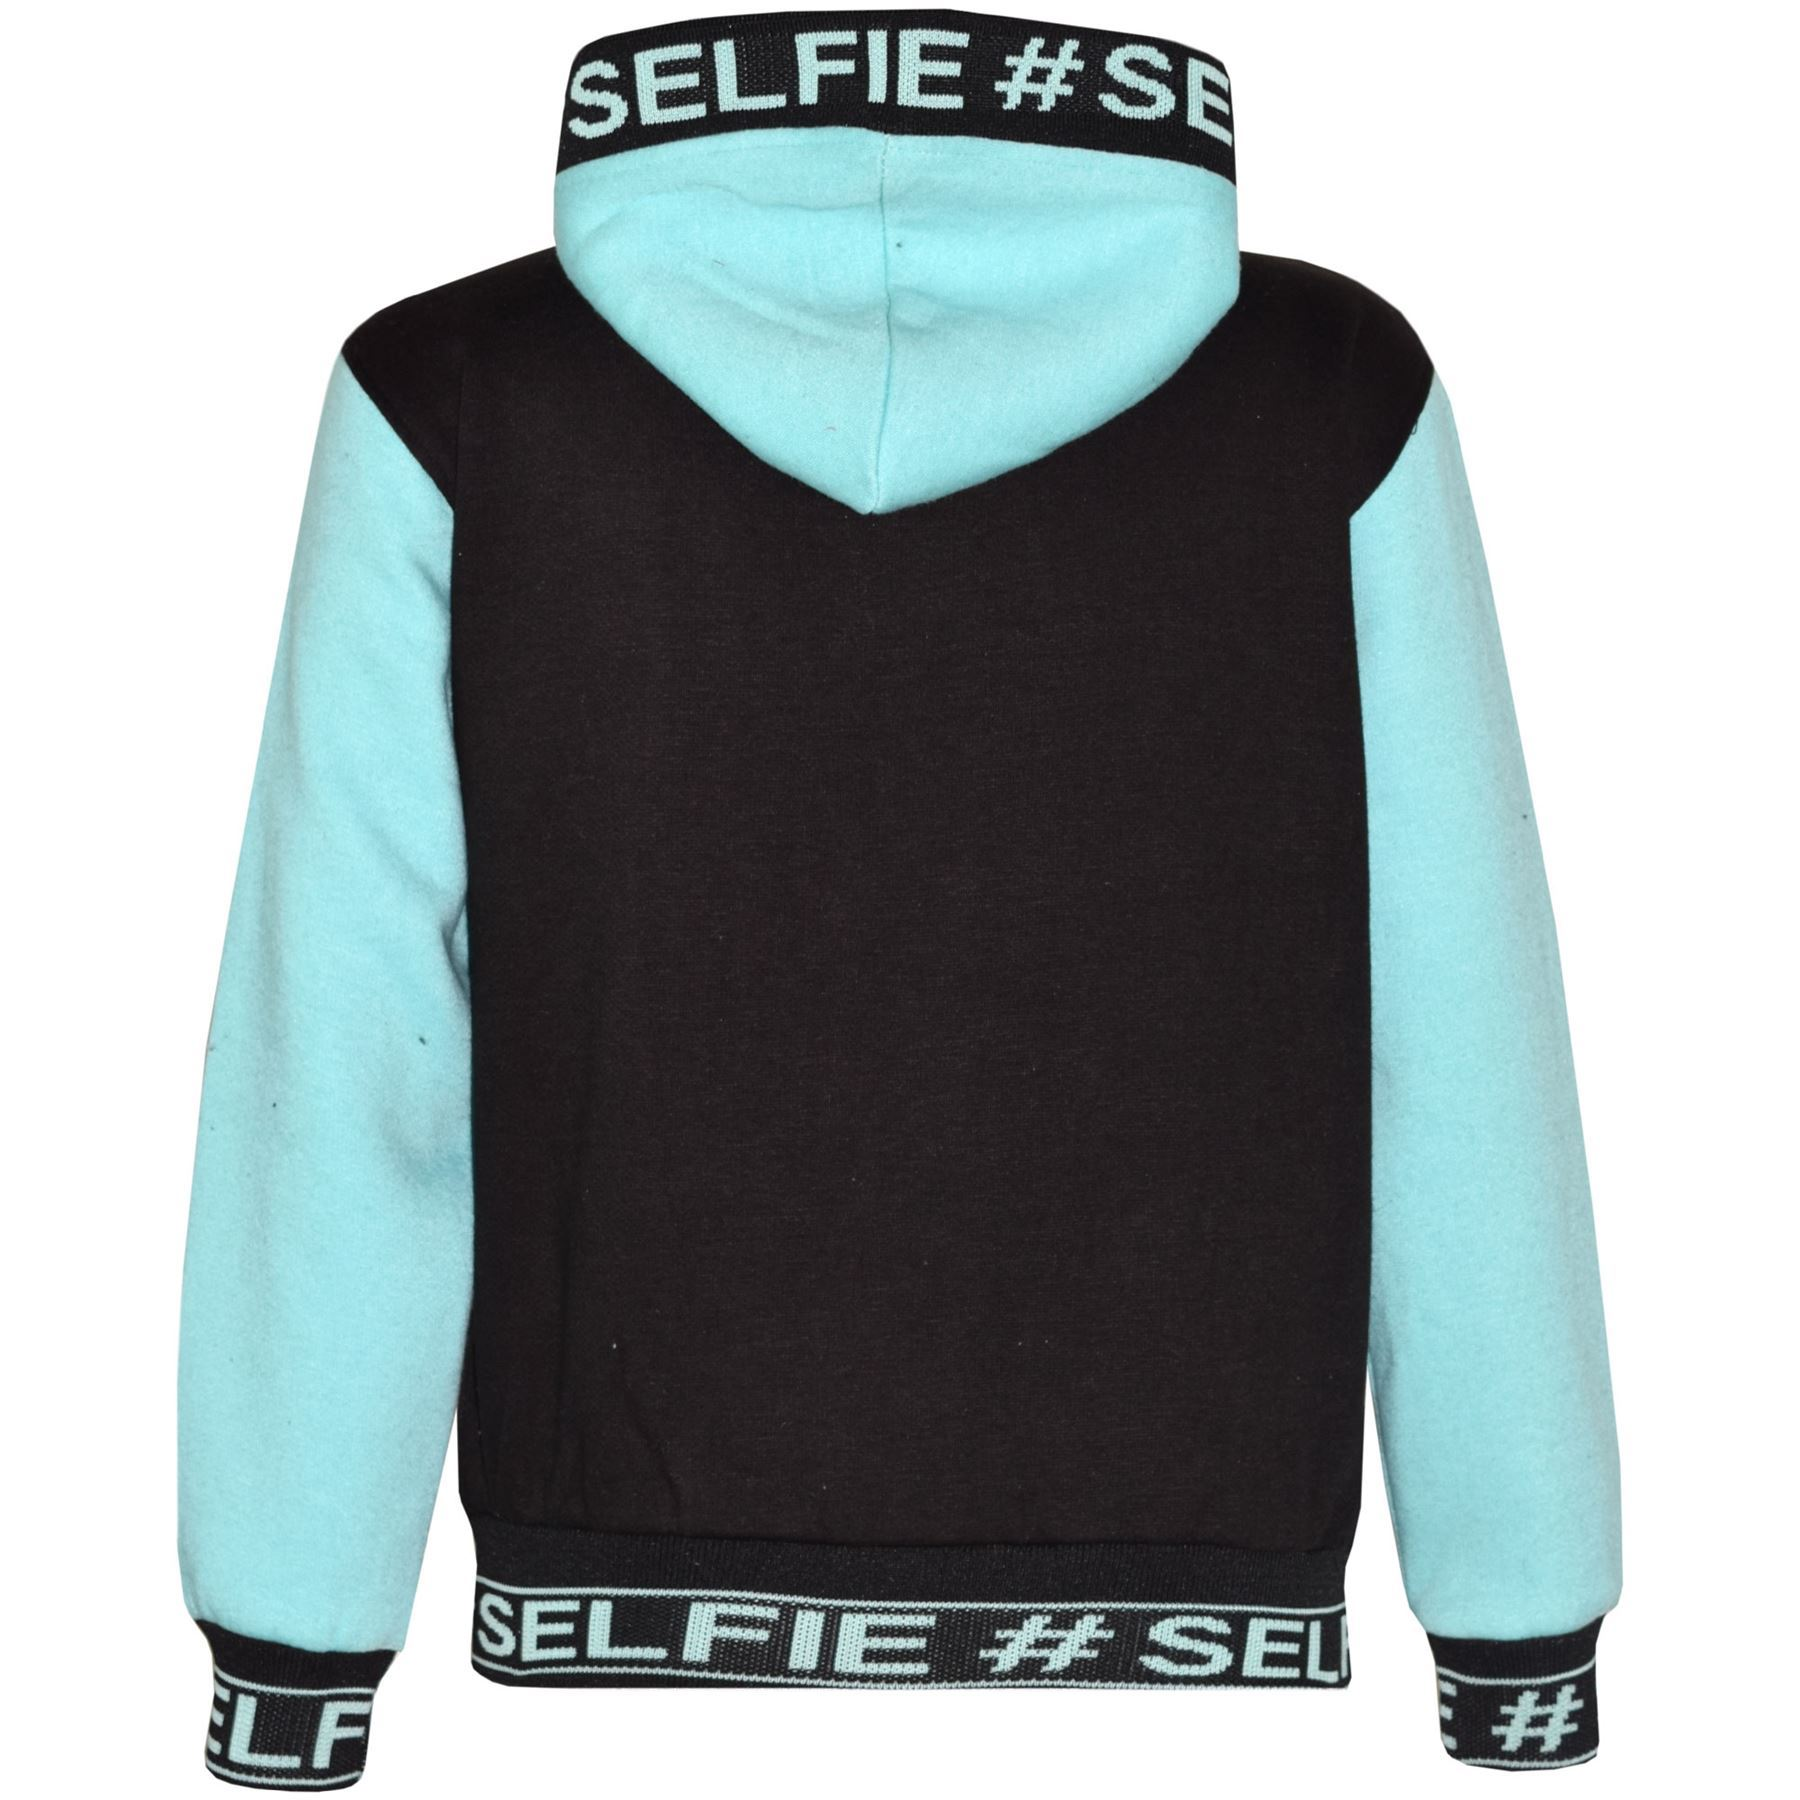 Kids Girls Boys Tracksuit Designer #Selfie Embroidered Top /& Bottom Jogging Suit